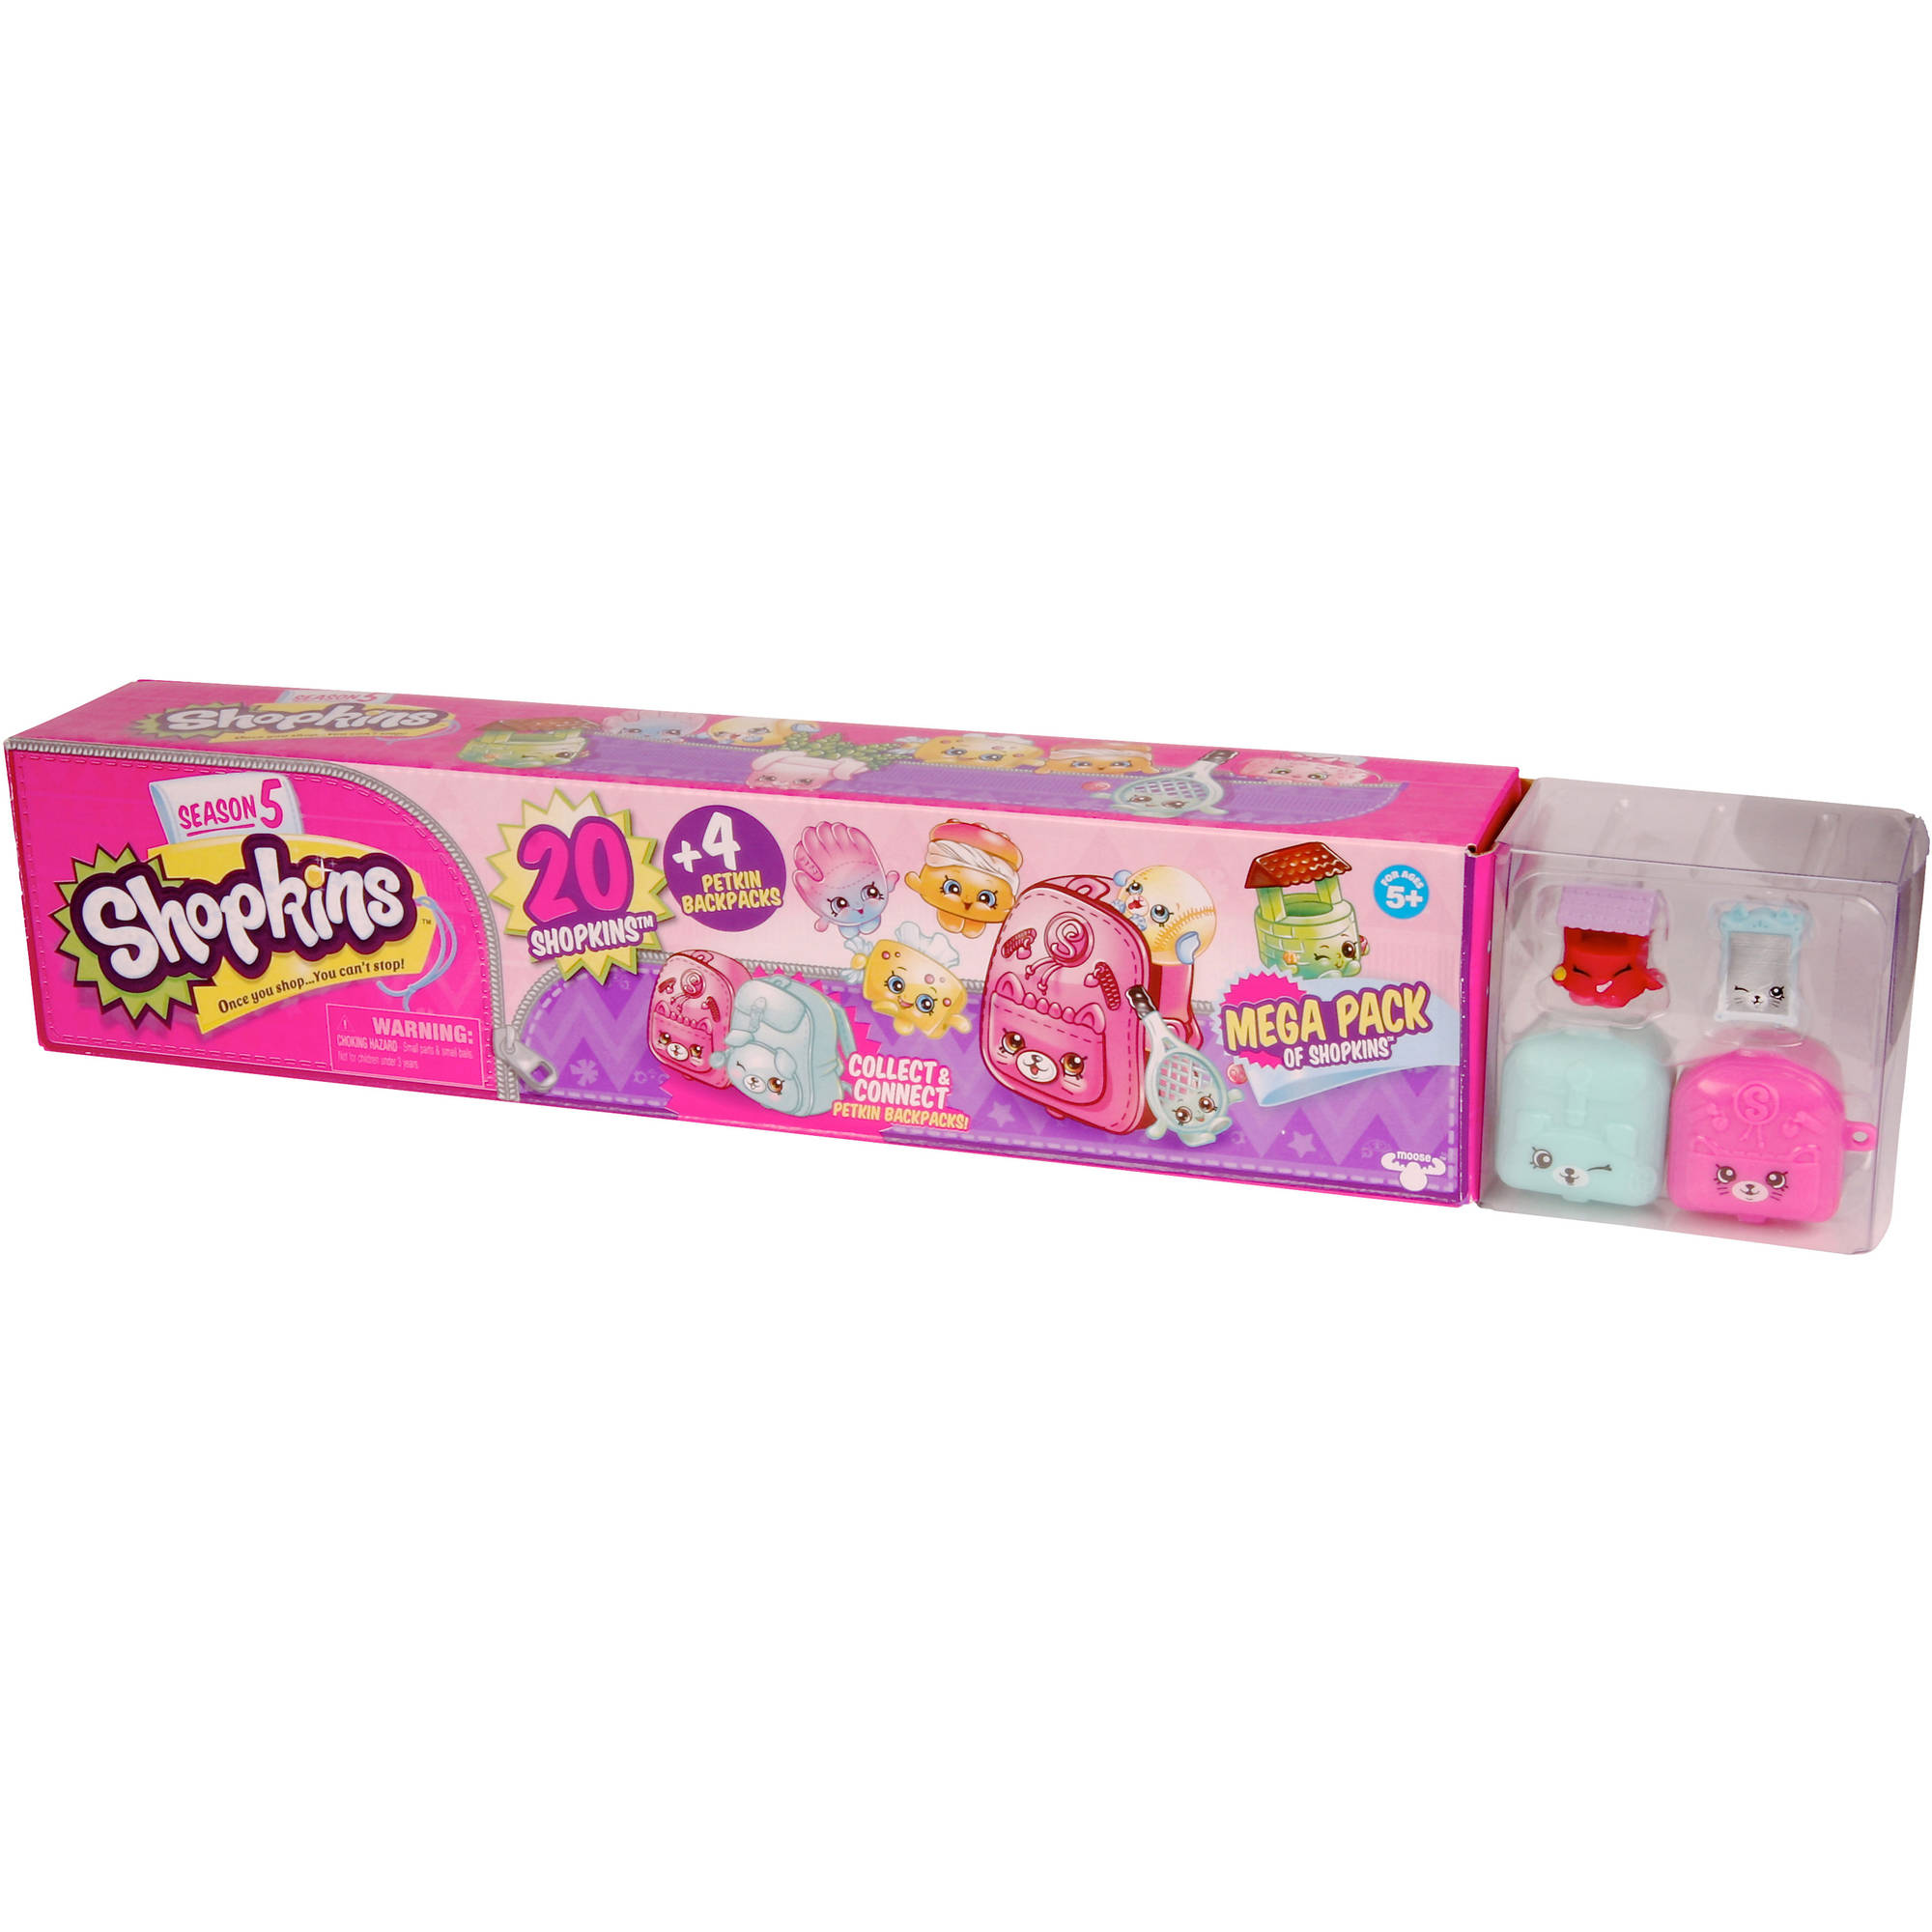 Shopkins Mega Pack Season 5 Walmart